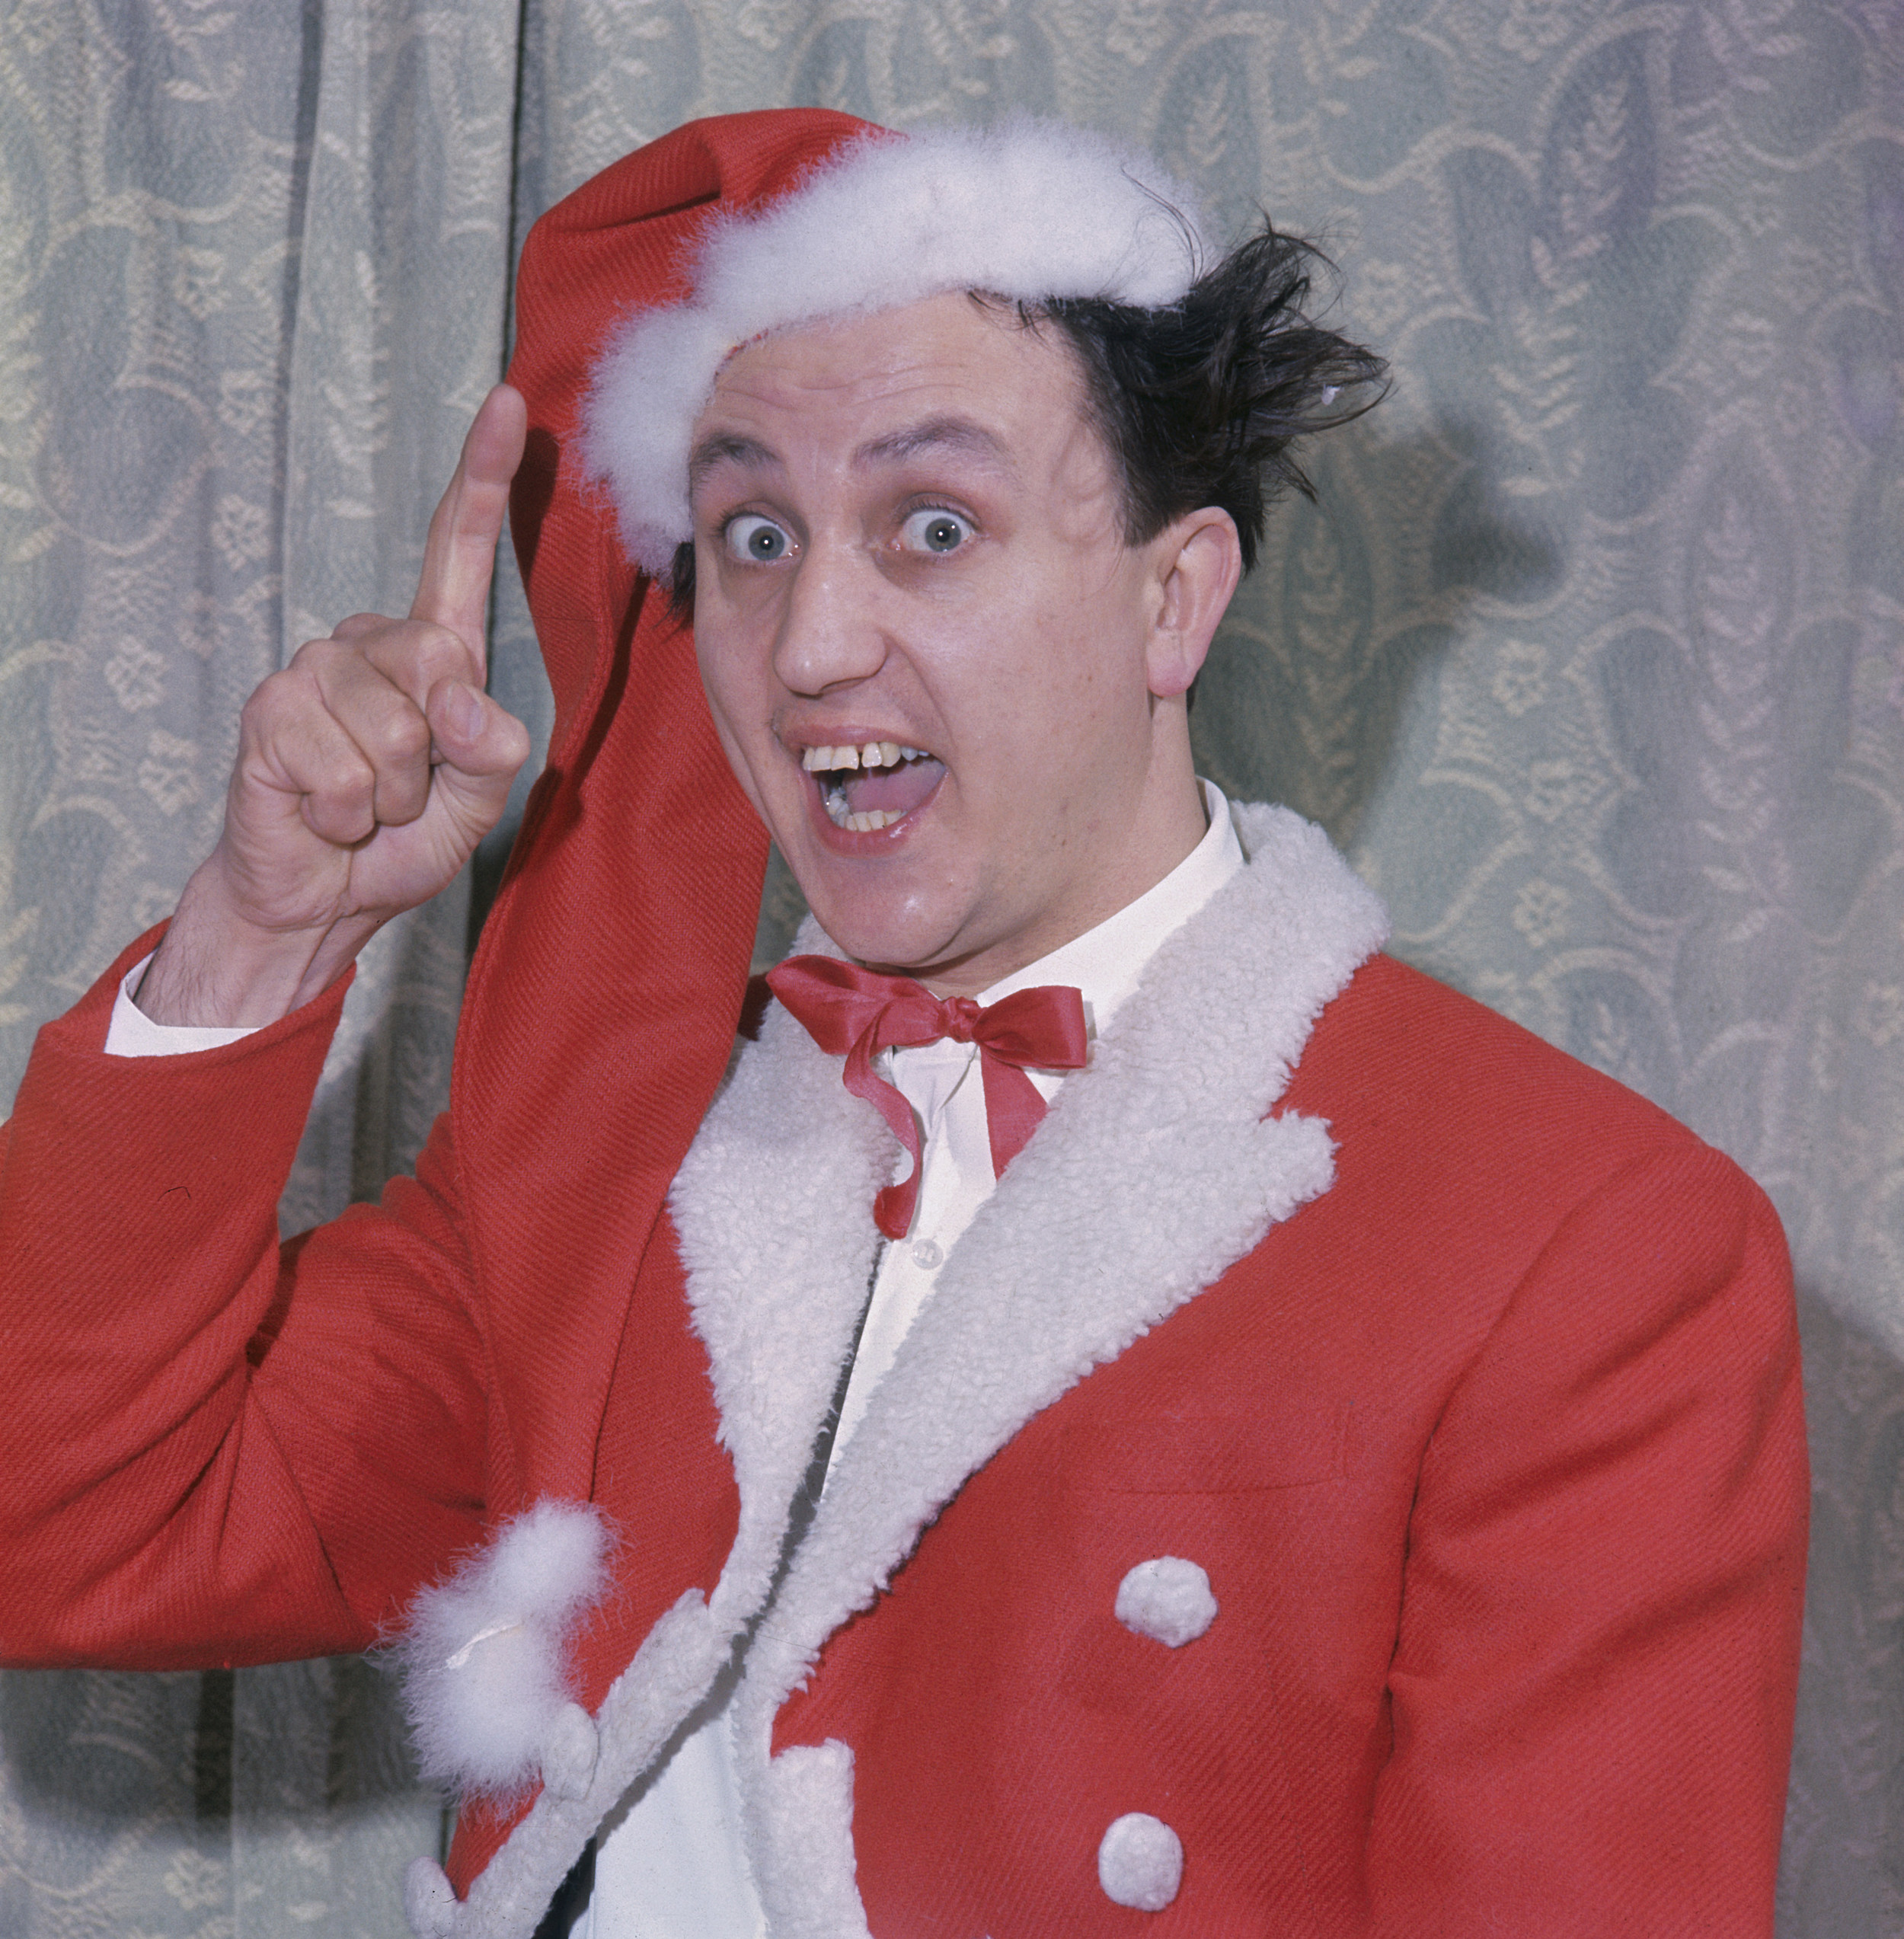 5 Obscure Christmas Songs That Make The Holiday Fun